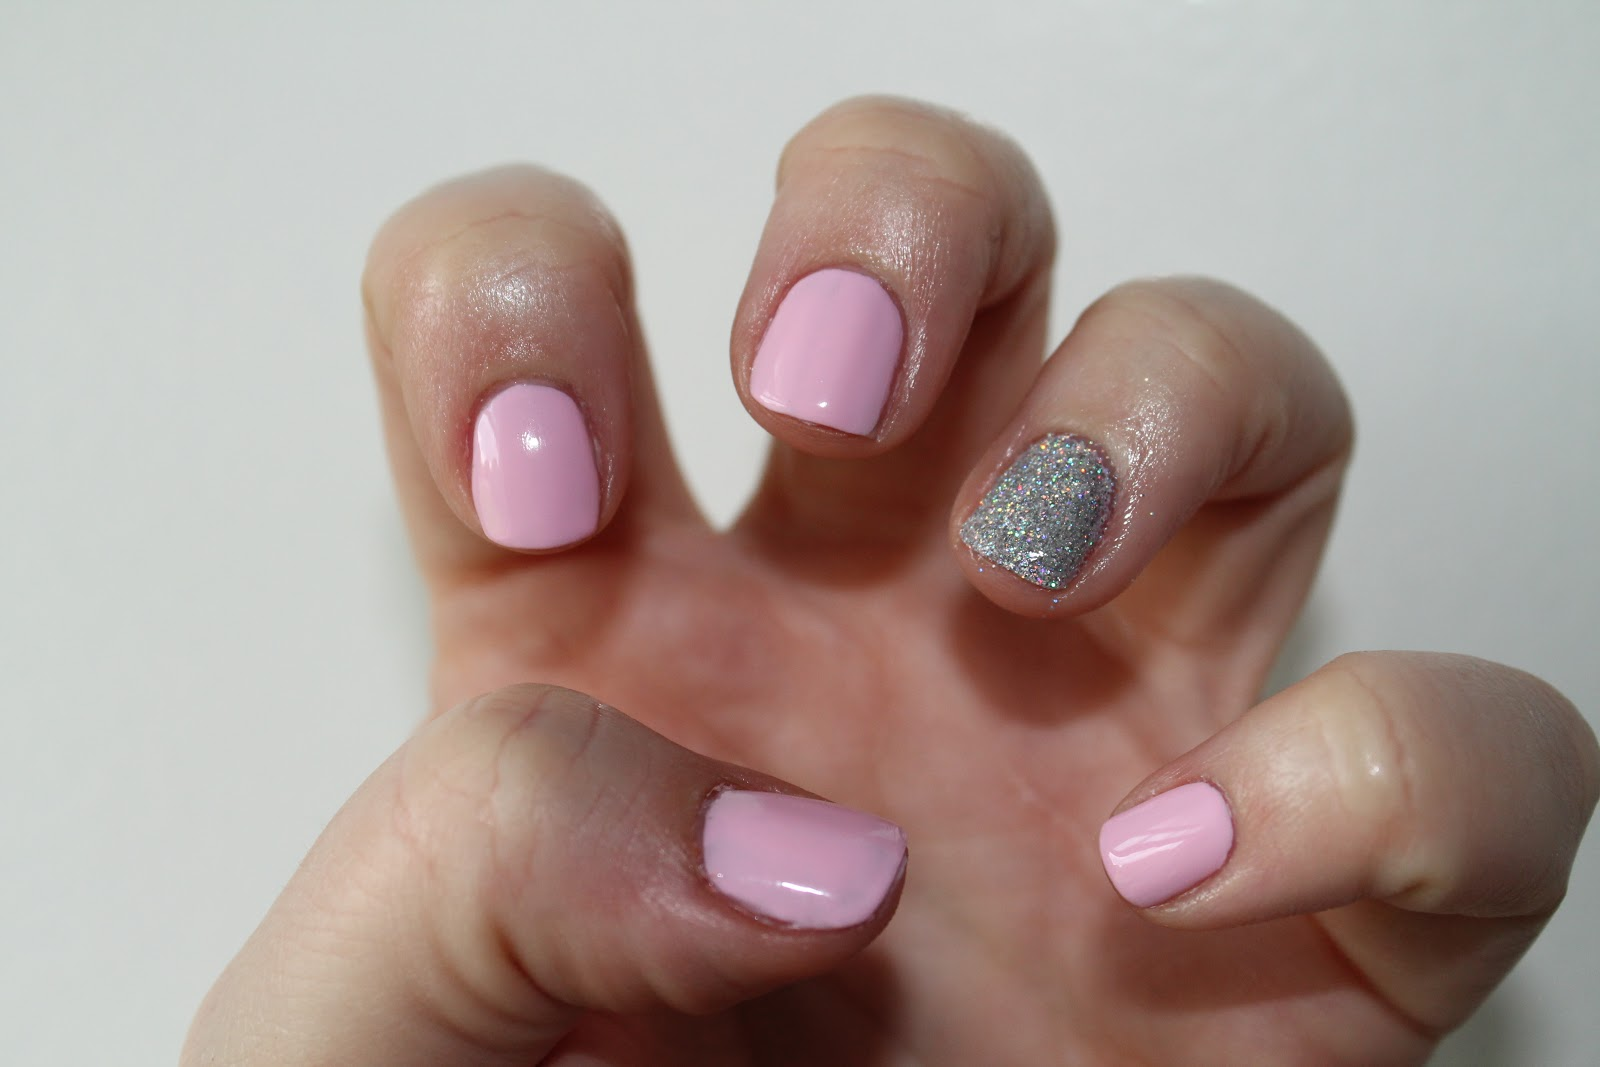 ManiMonday: Essie Awareness with Bling - At the Pink of Perfection